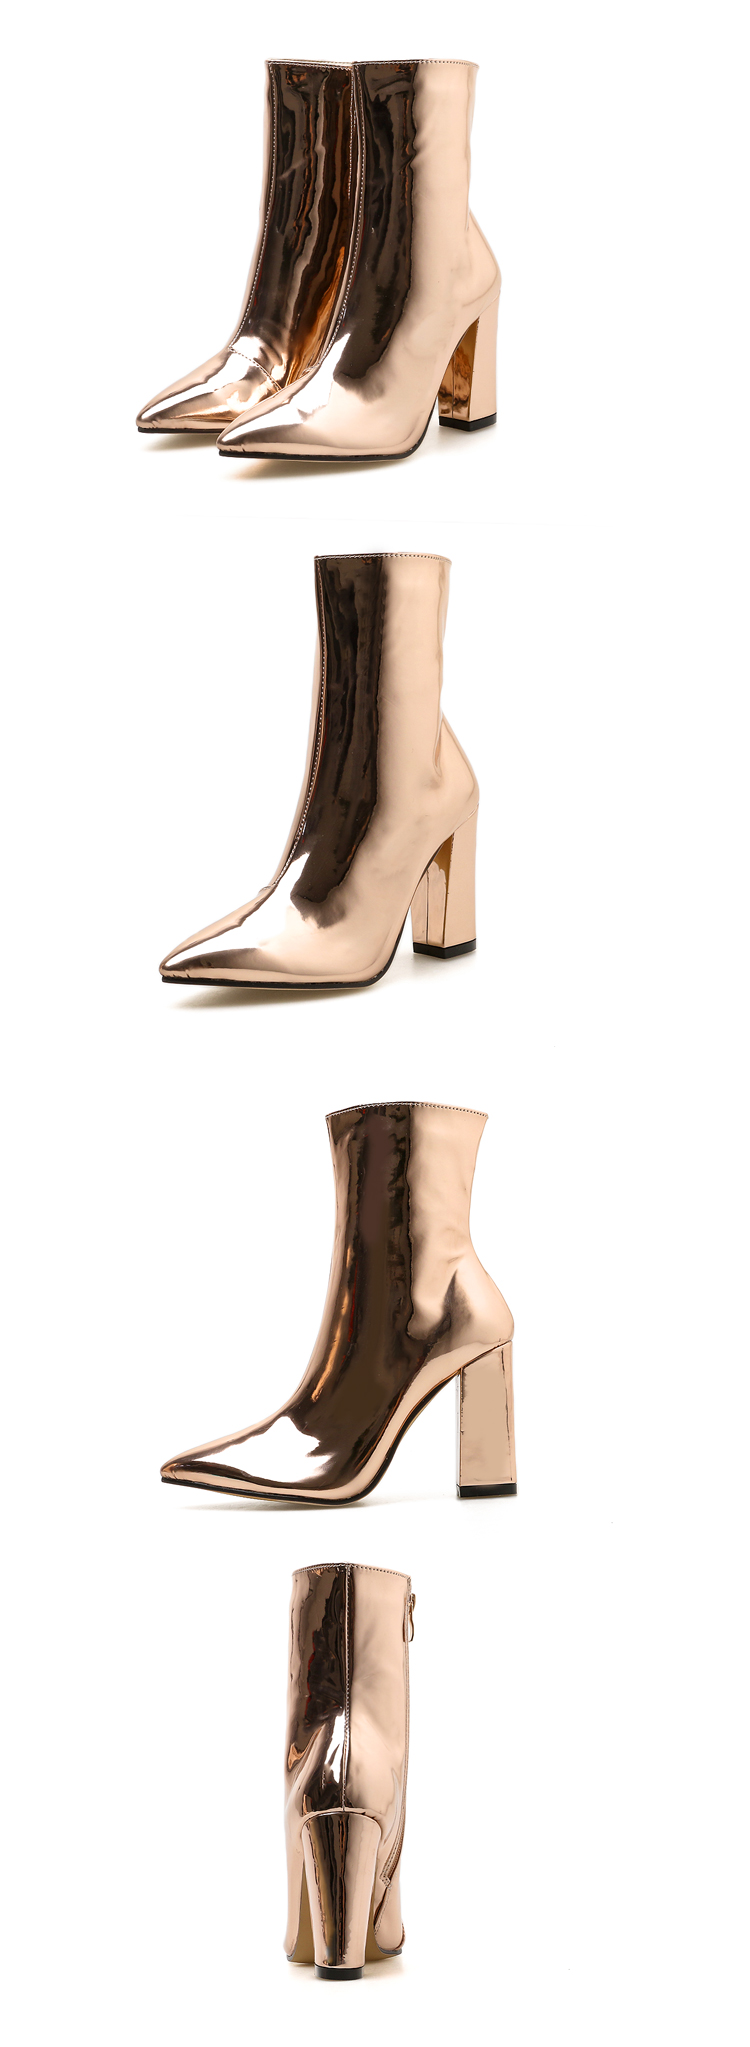 metalic gold ankle boots